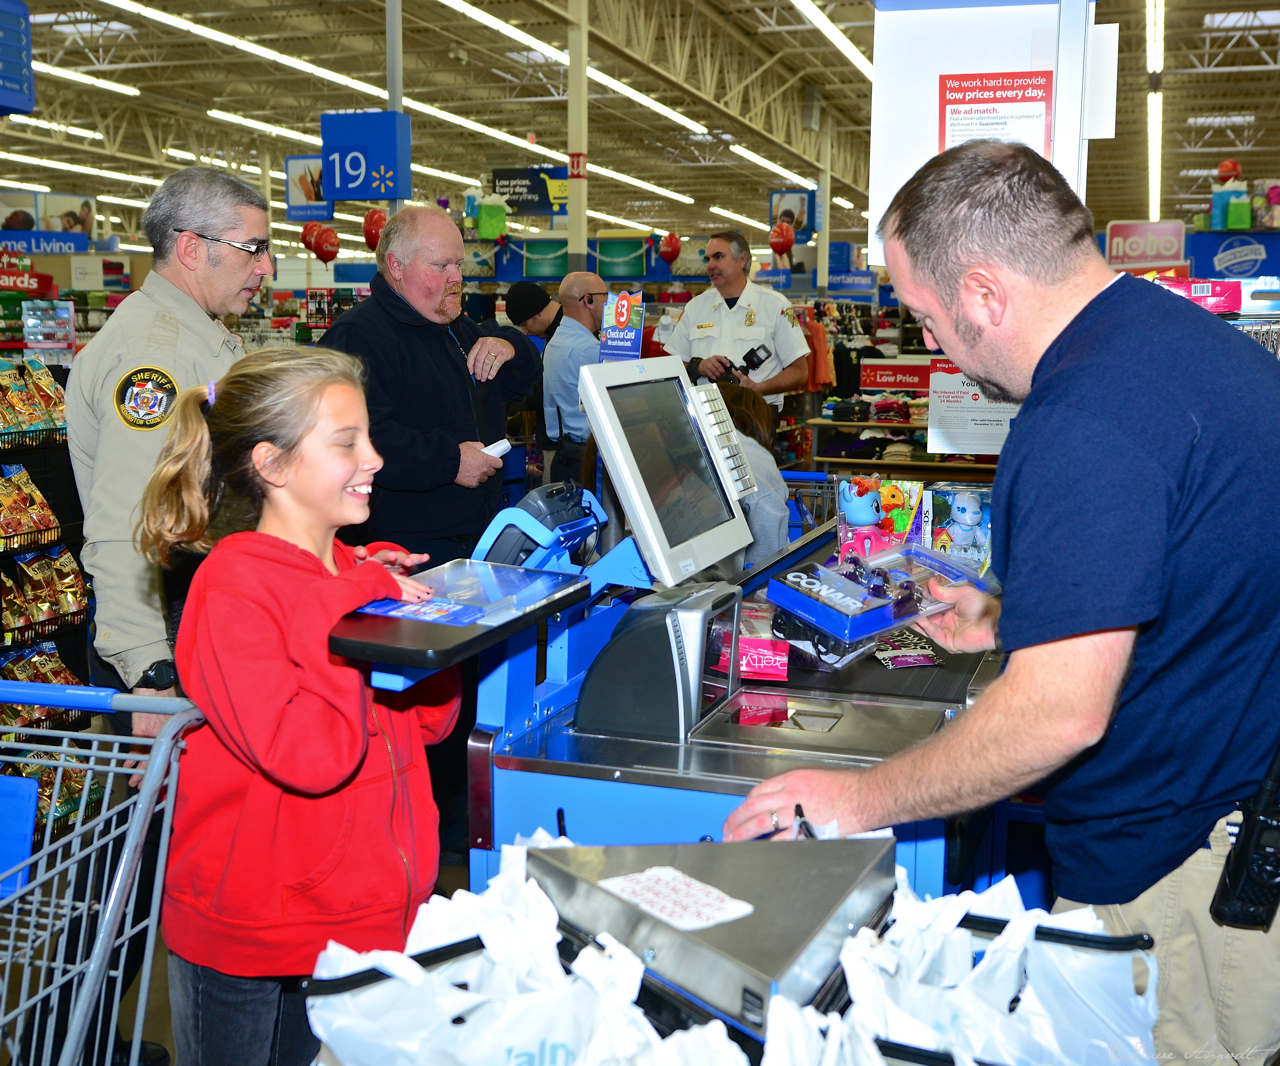 Rayna Rasmussen with Sheriff's Officer Eric Endter checking out.